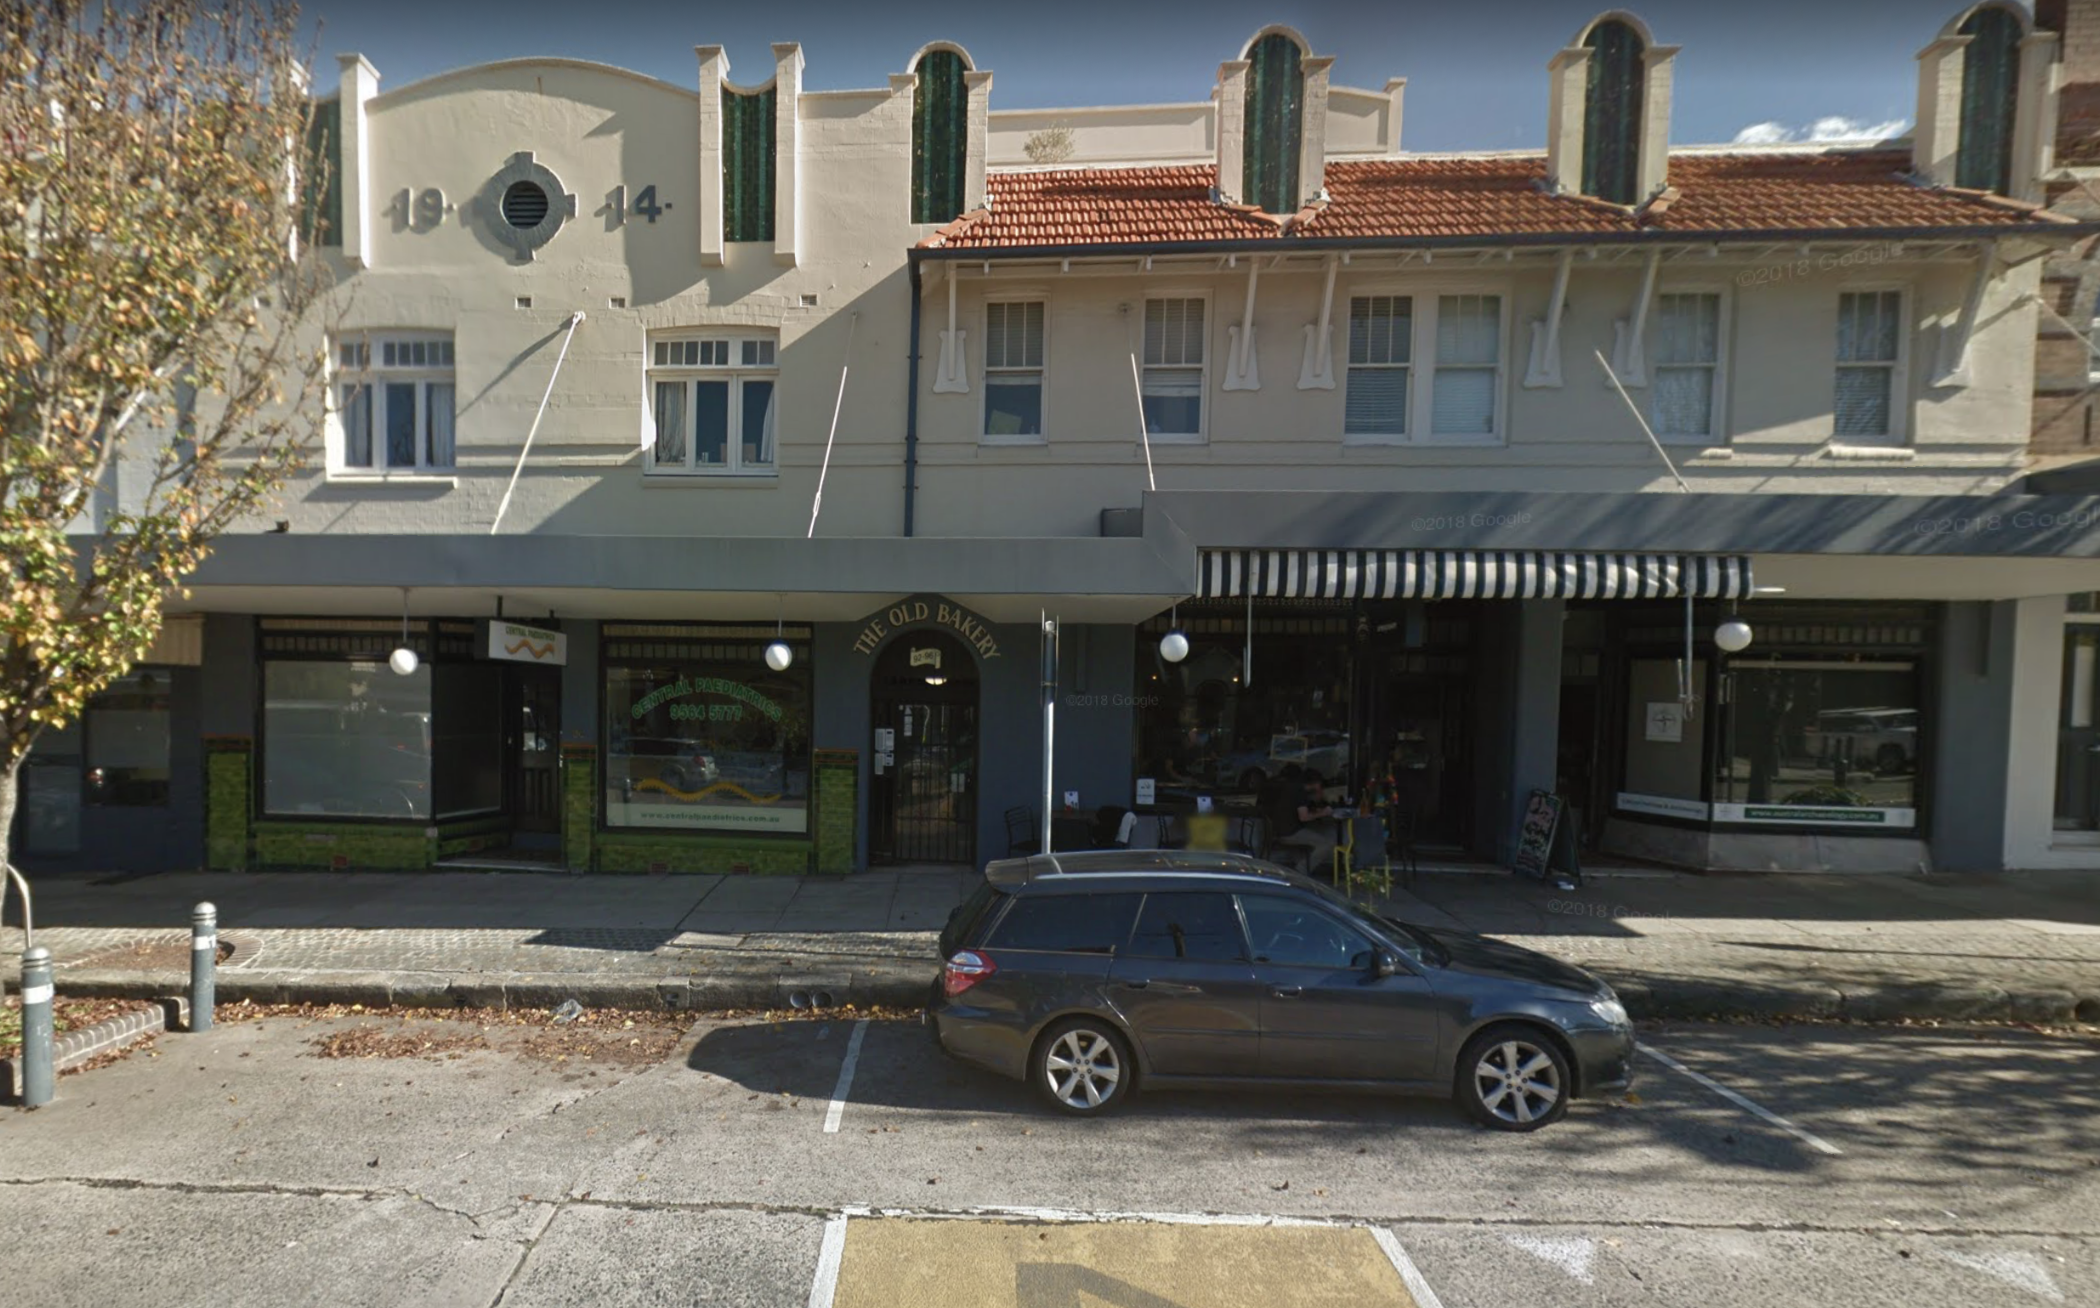 Google Images of Percival Road, Stanmore